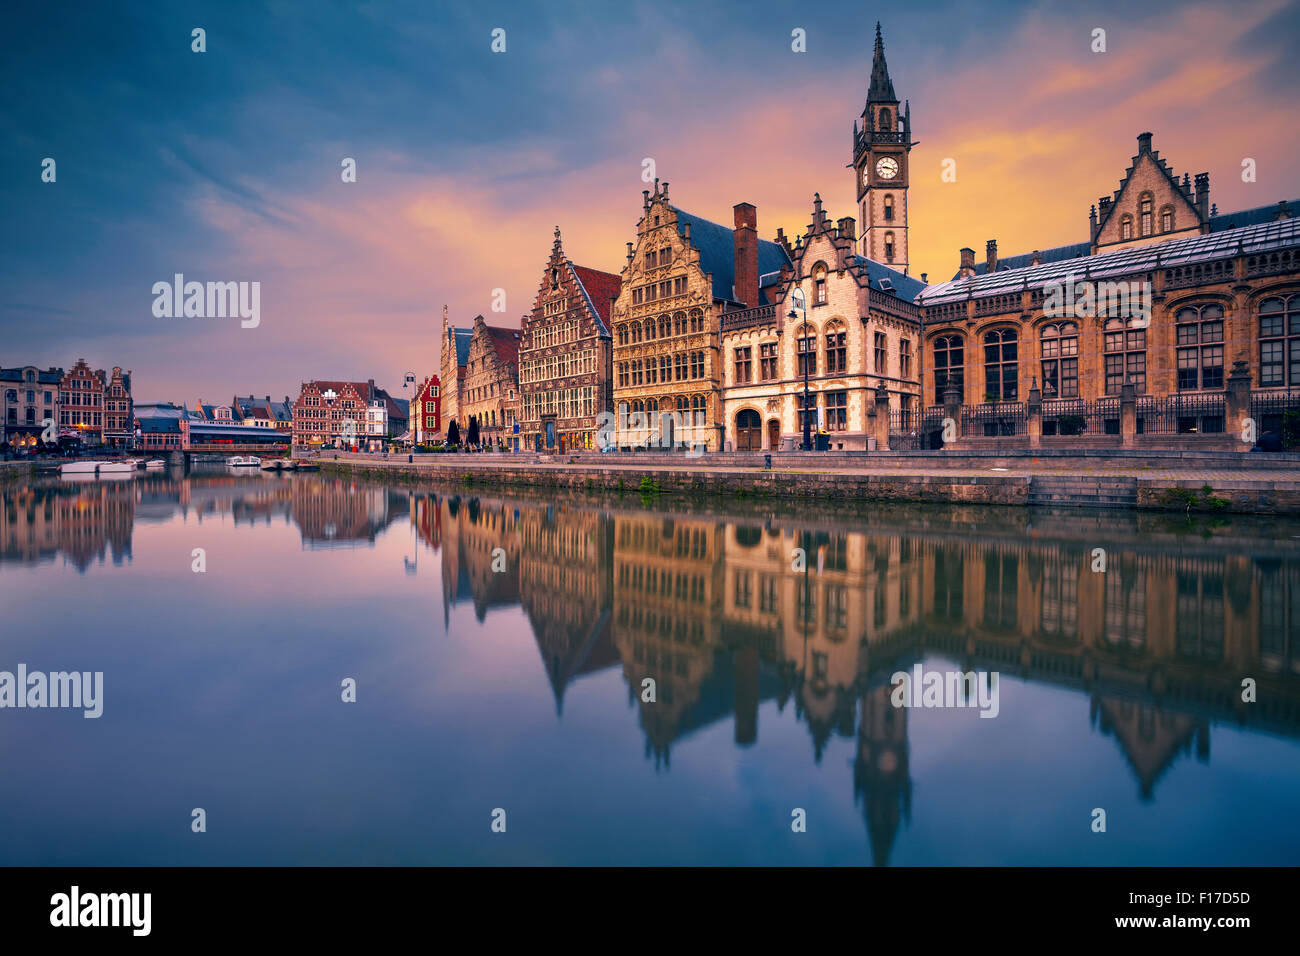 Ghent. Image of Ghent, Belgium during dramatic twilight. - Stock Image